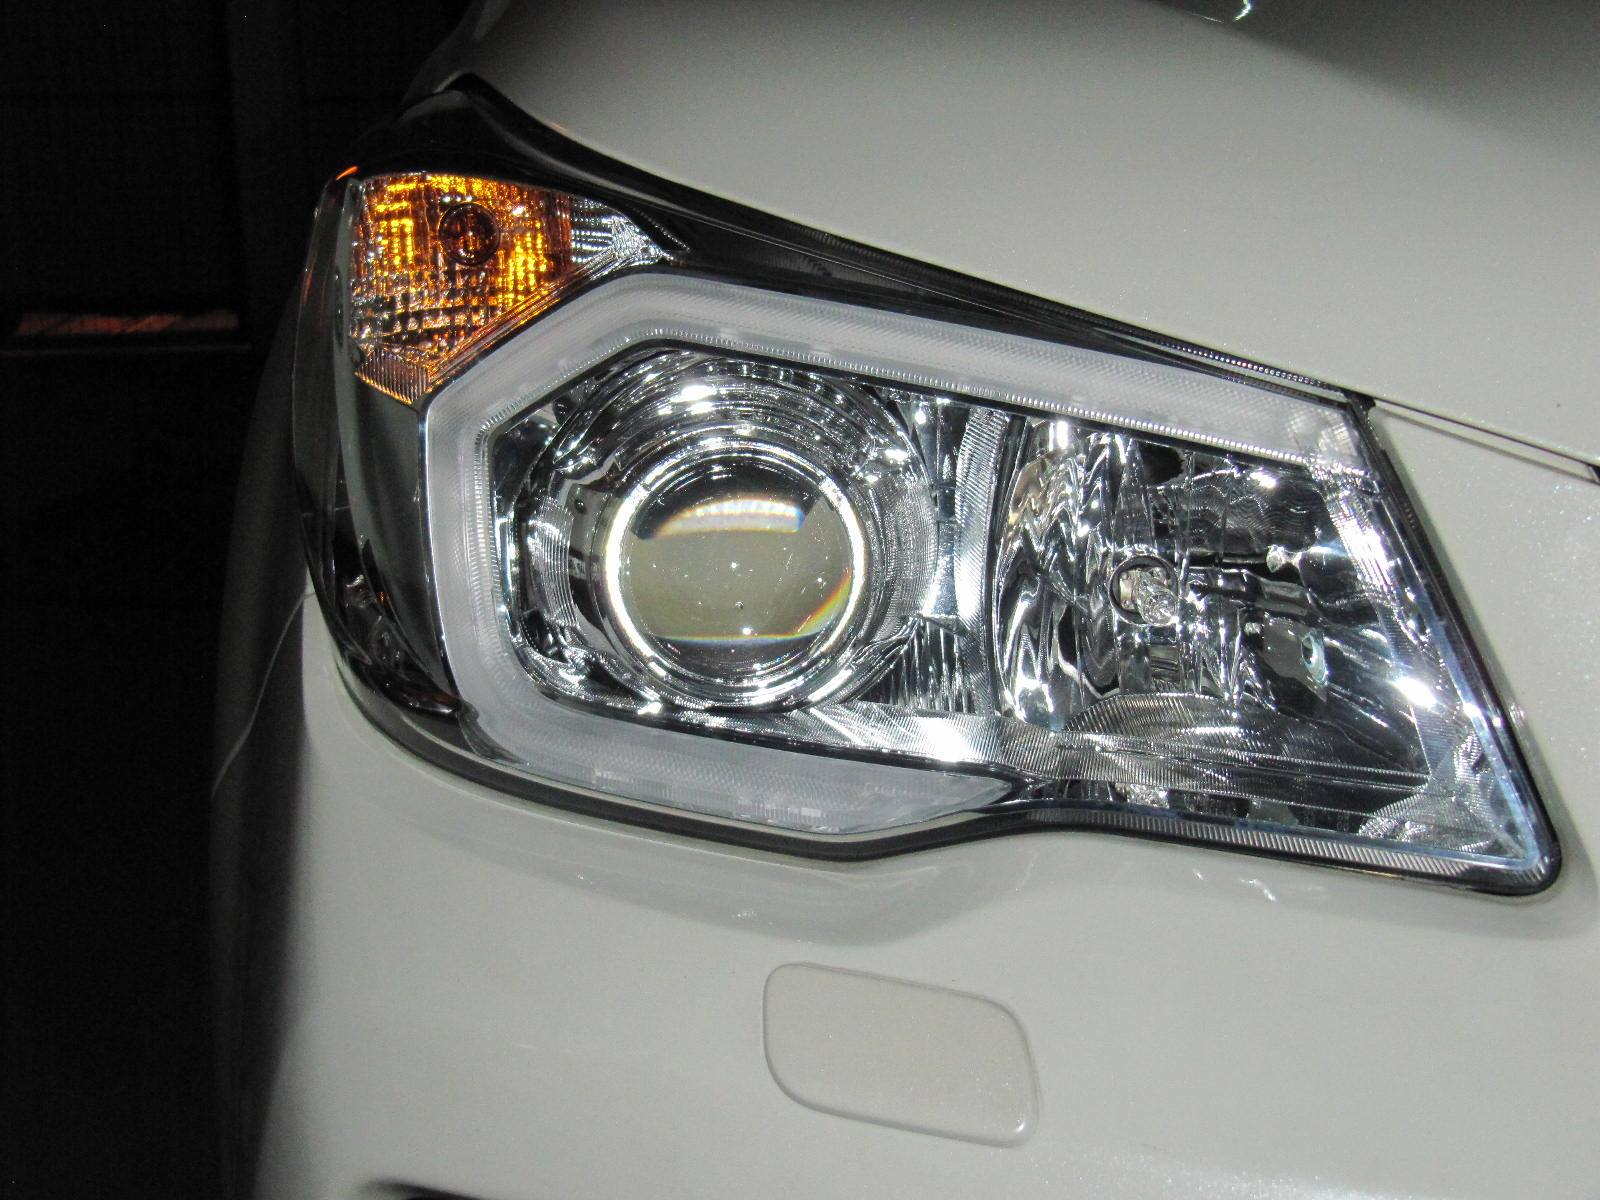 hid retrofit acirc subaru forester xt scroll down and see how we open and re seal headlights as if it was not opened at all oem goodness added 2 5prime hid fog projectors for maximum foreground